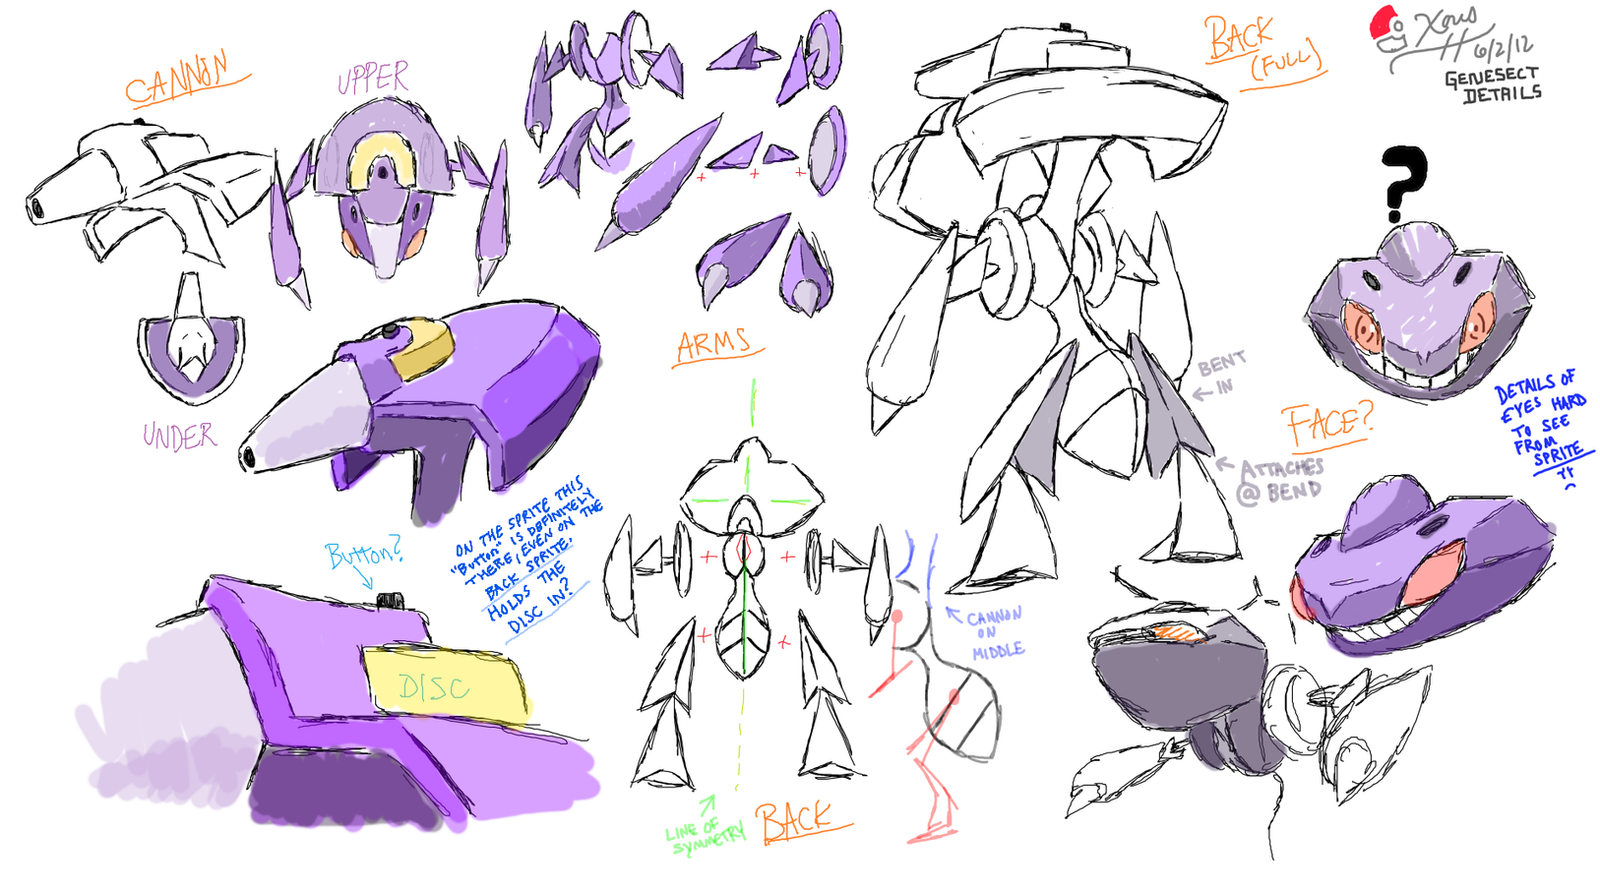 Genesect Detail Sketches by Xous54 on DeviantArt